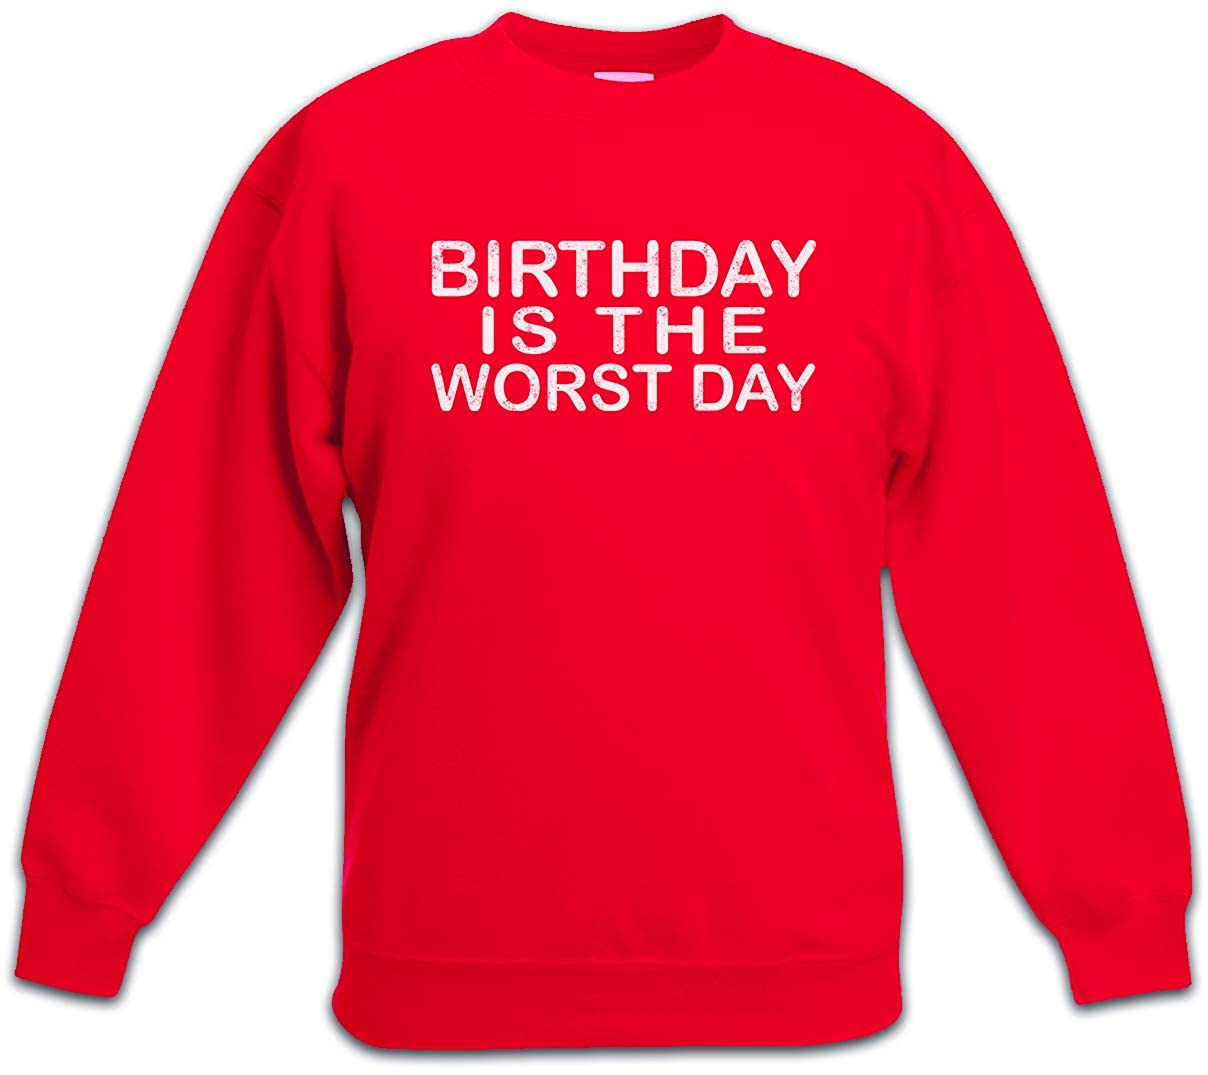 Bekleidung Urban Backwoods Birthday Is The Worst Day Kinder Jungen Madchen Pullover